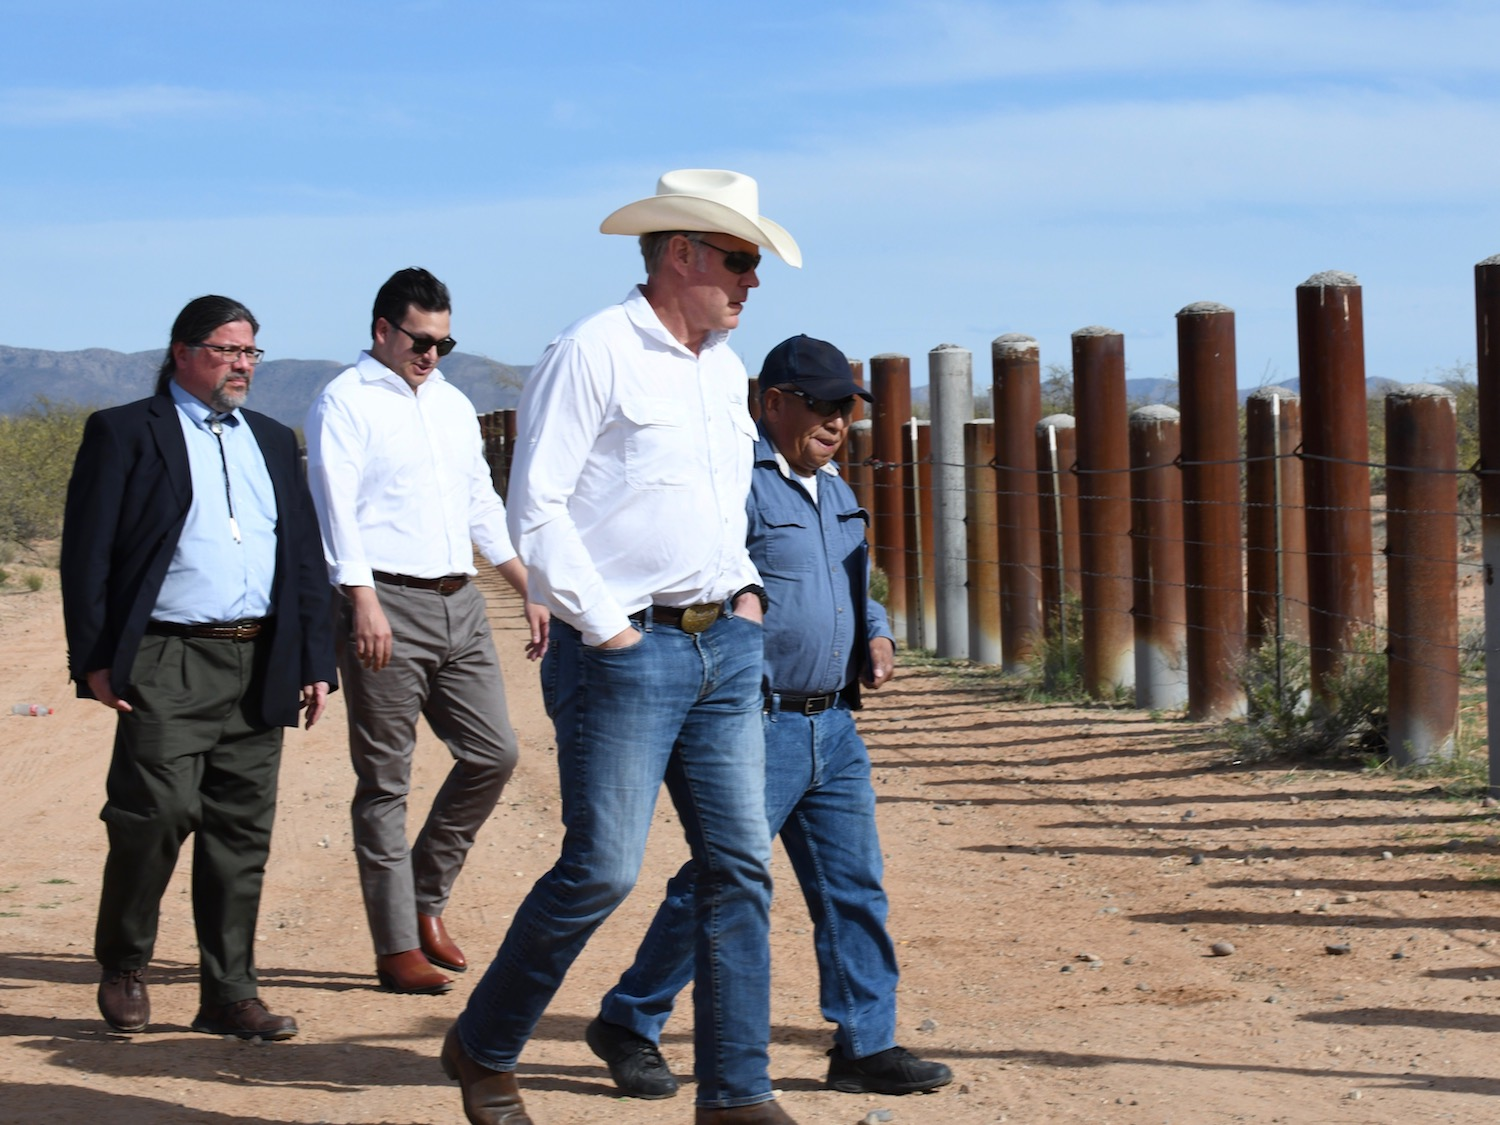 Tohono O'odham Nation reaffirms opposition to wall along border